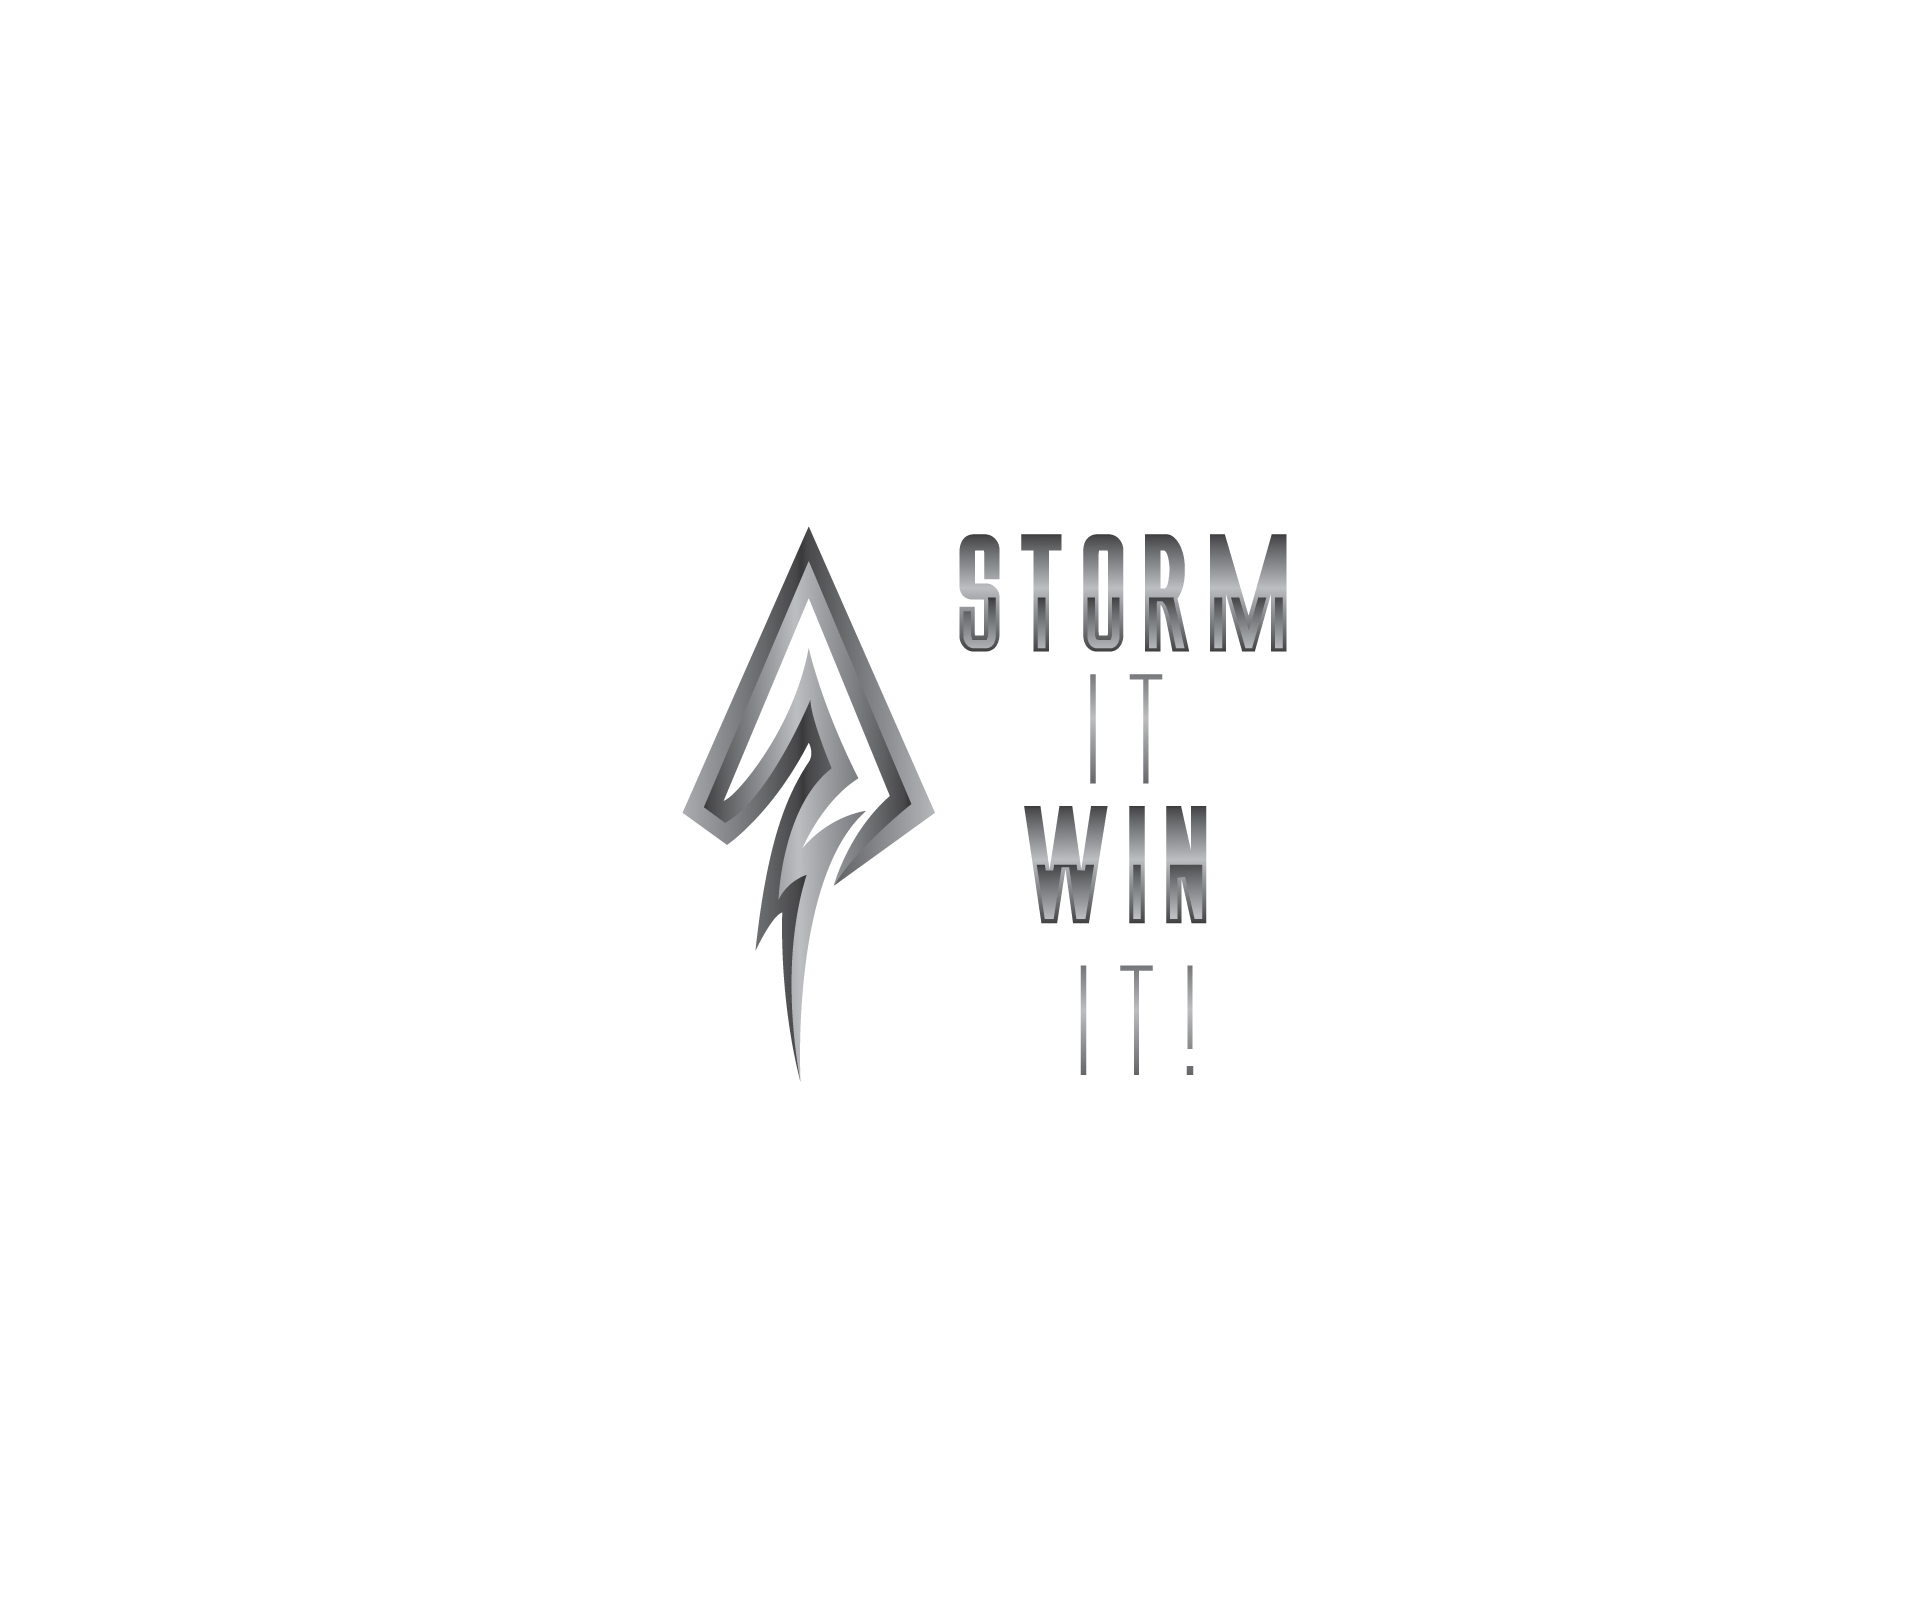 Storm-It-Win-It!-Final-transparent-background.png